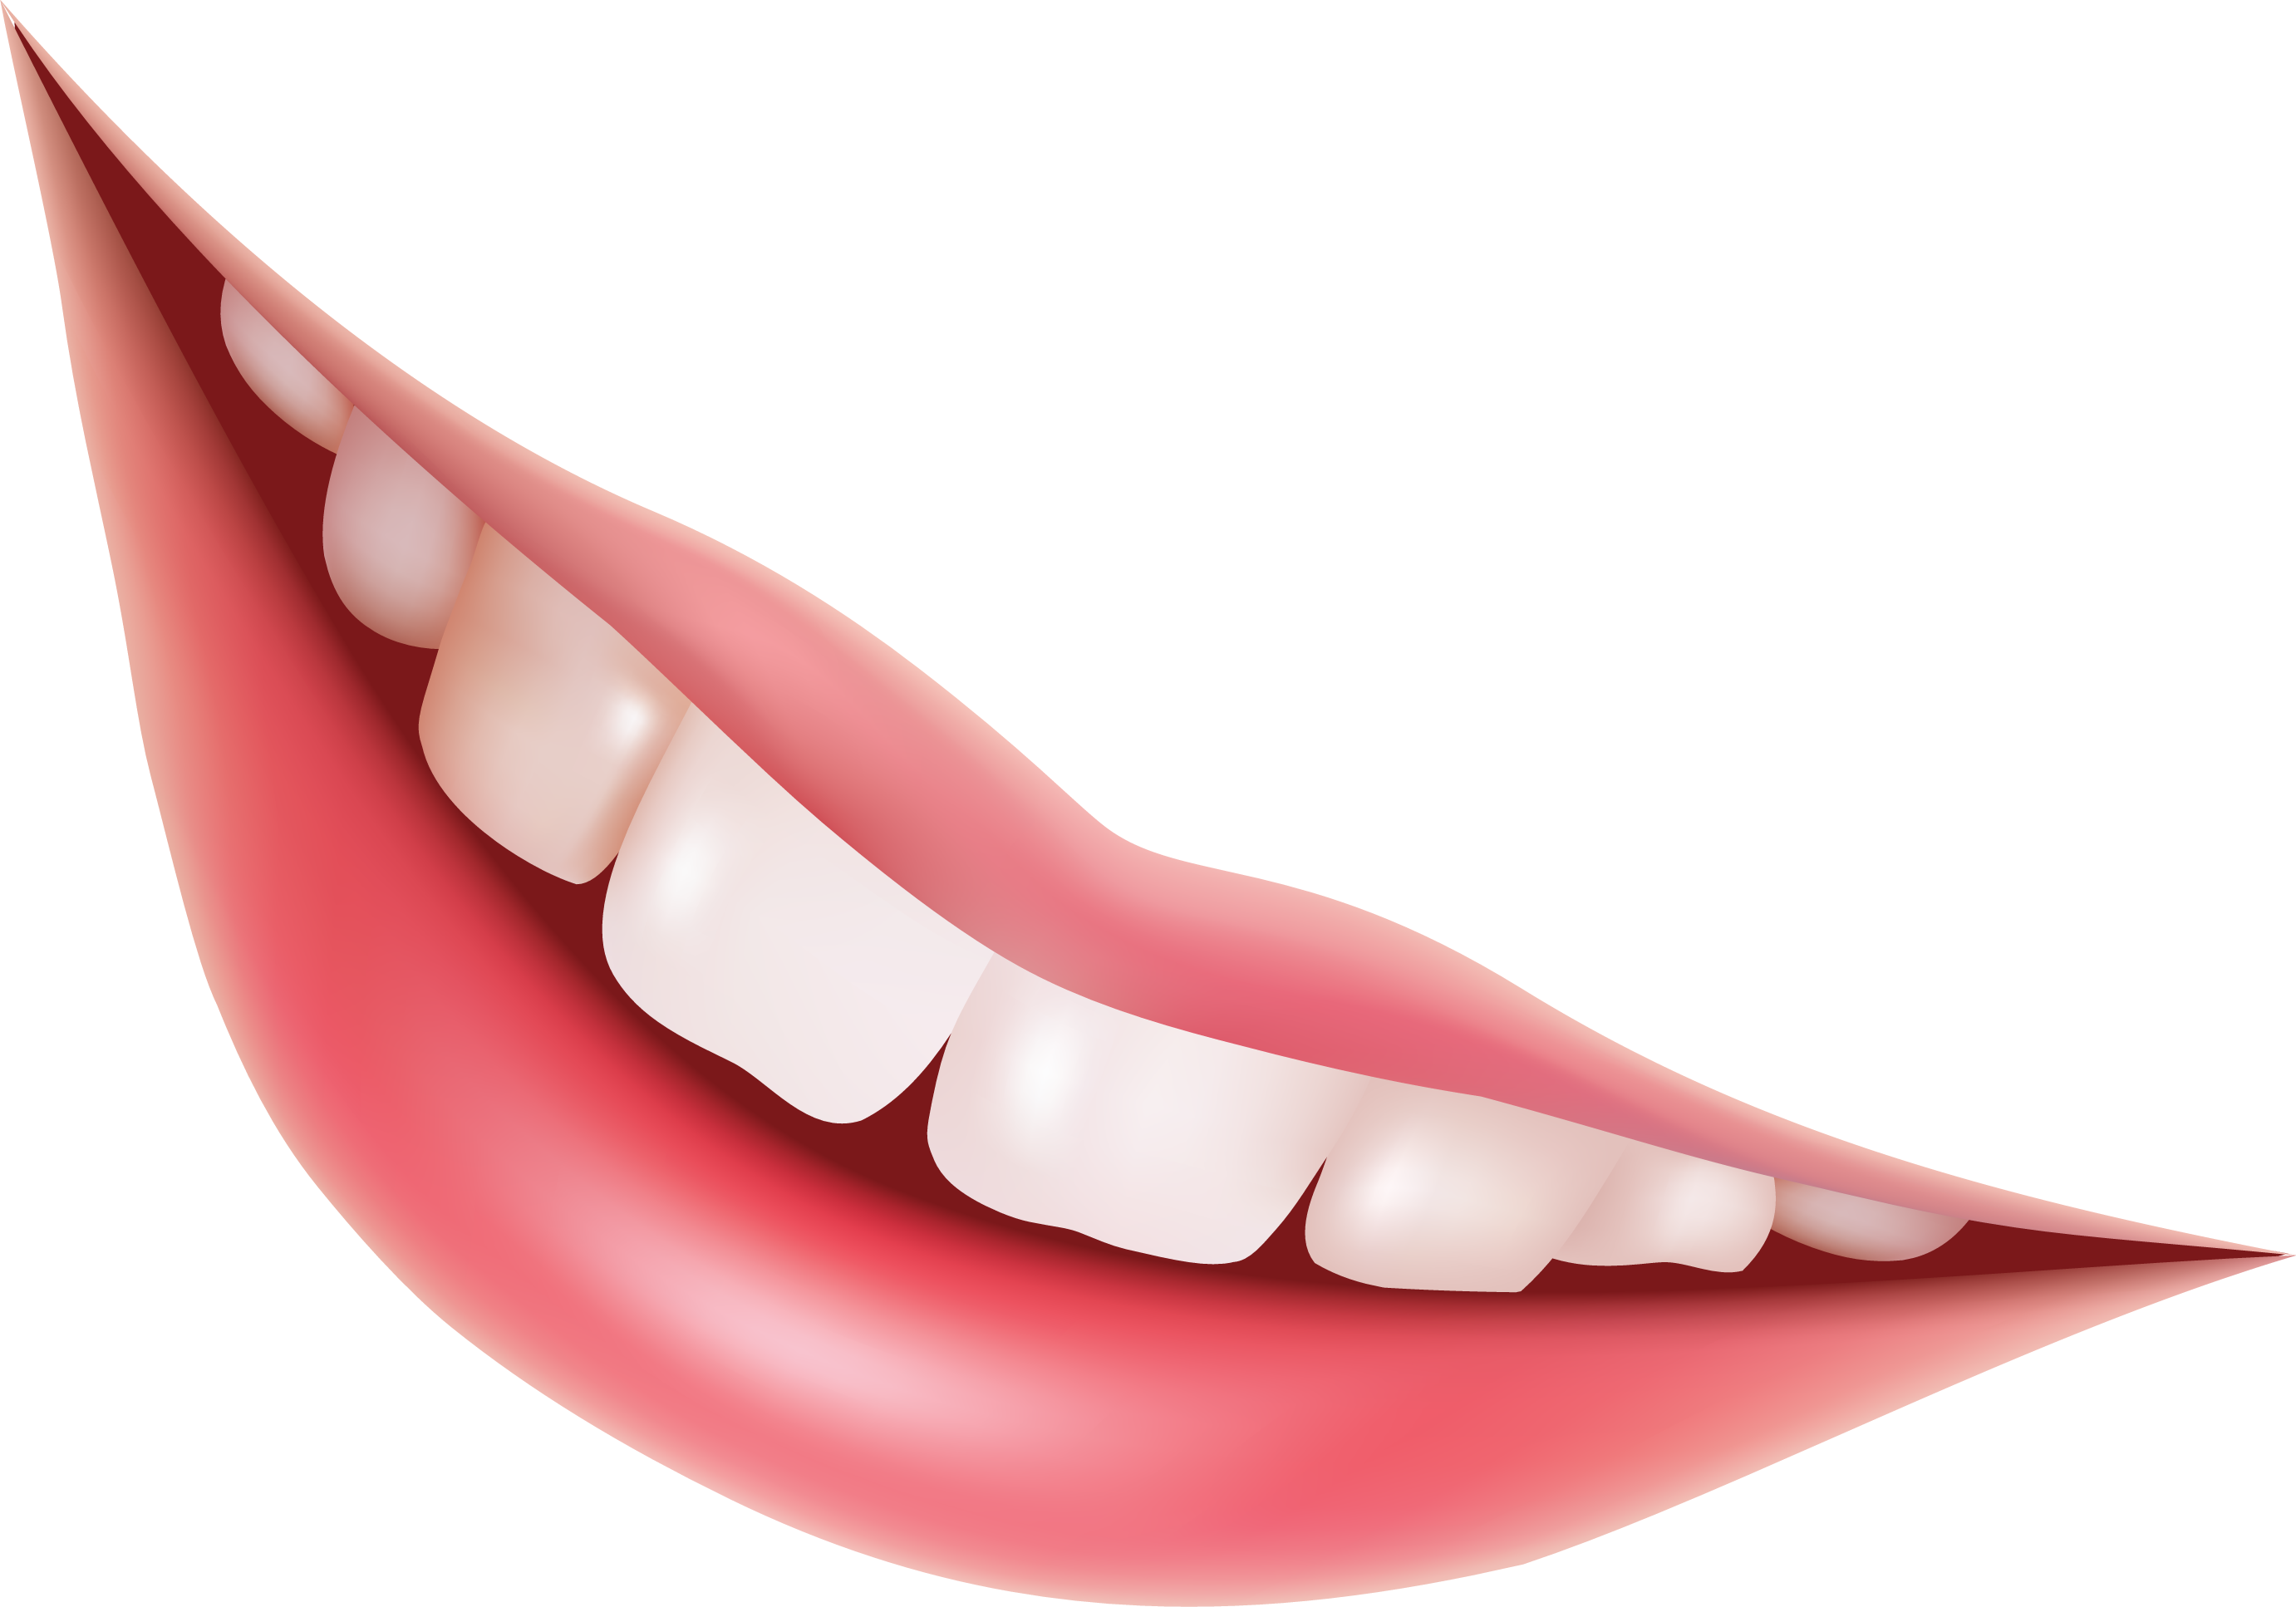 Human smile png. Mouth images free download